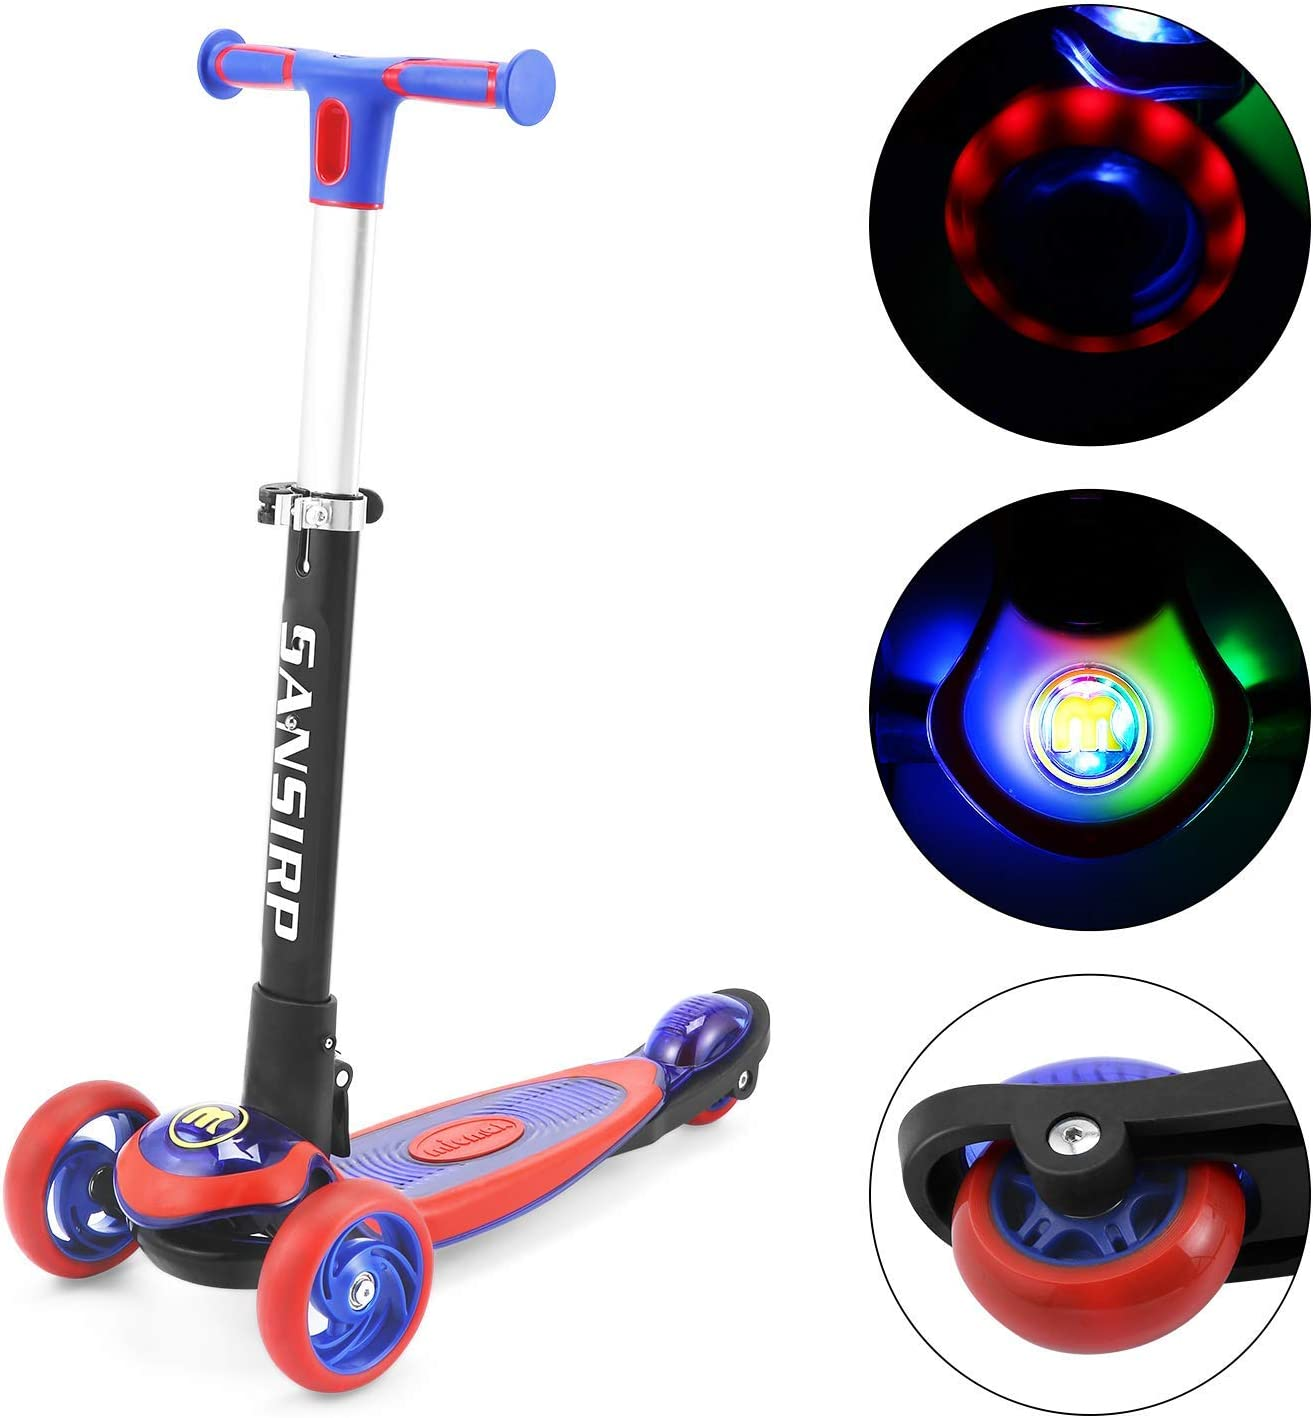 4 Adjustable Height Featuring Quick-Release Folding System 2 Wheels with PU LED Light Kids Kick Scooter Scooters for Kids 6 Years and up Lean to Steer Design